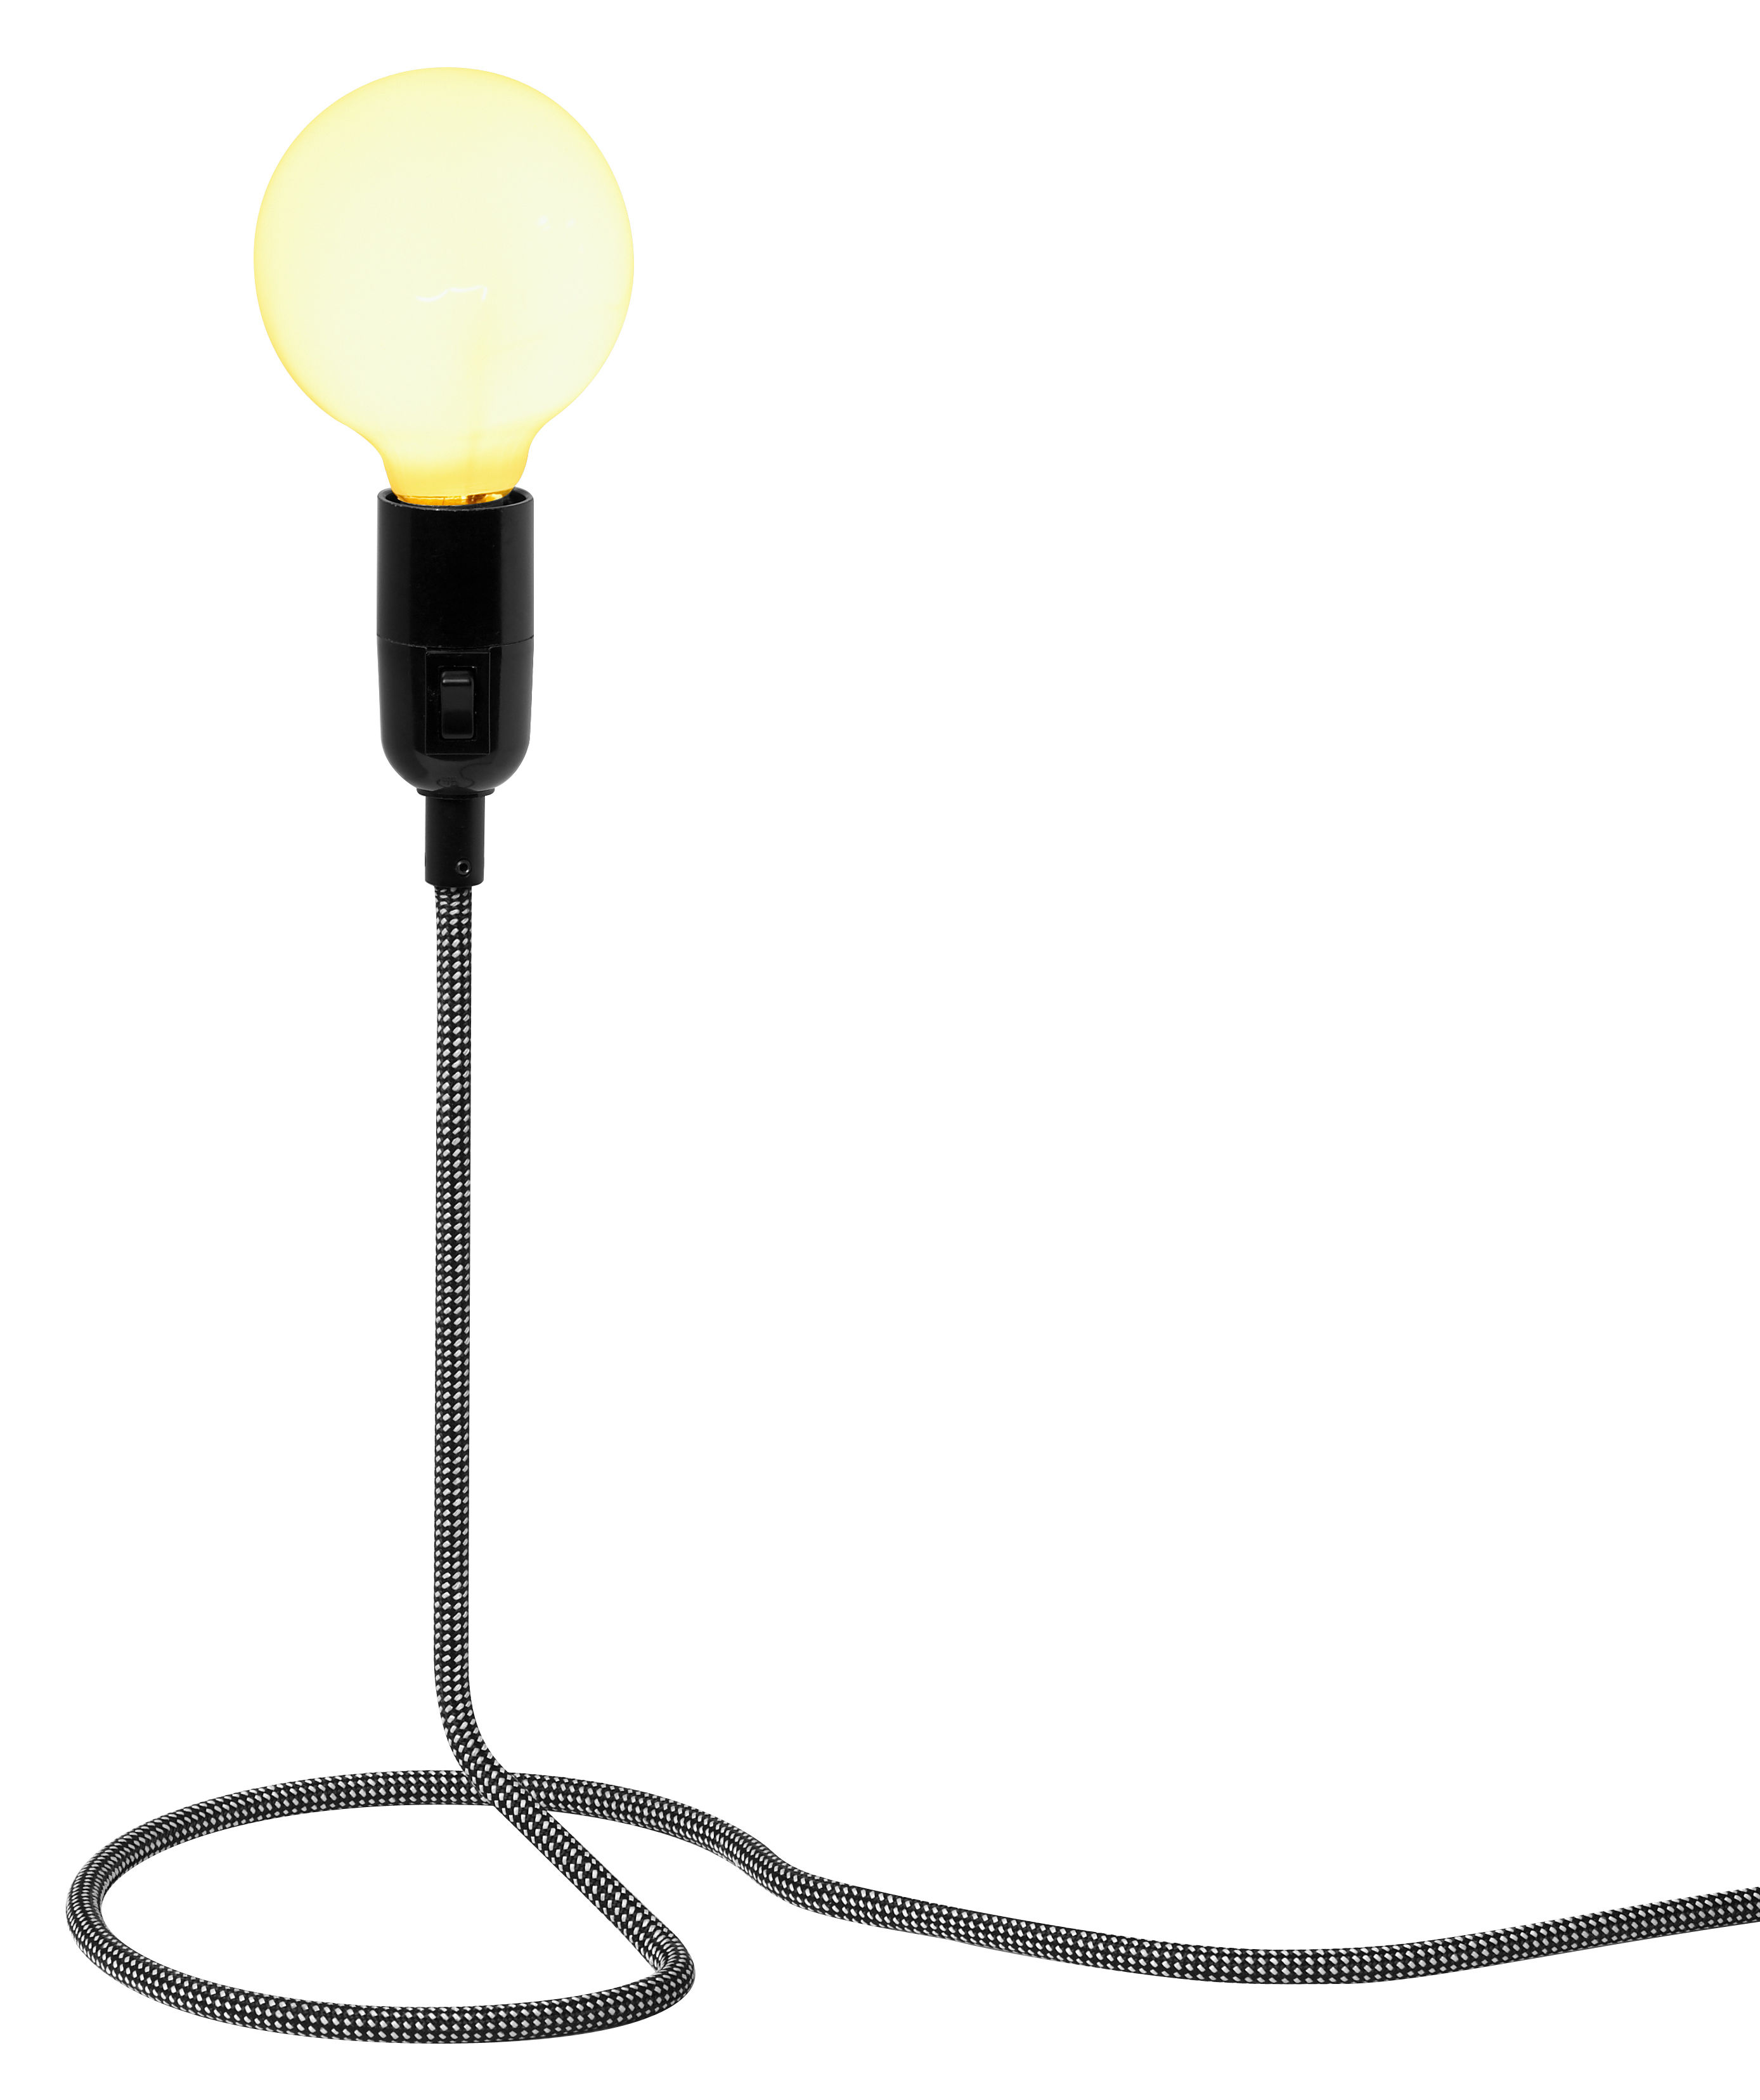 Lighting - Table Lamps - Cord Lamp Table lamp by Design House Stockholm - Black & white cord - Cotton, Steel